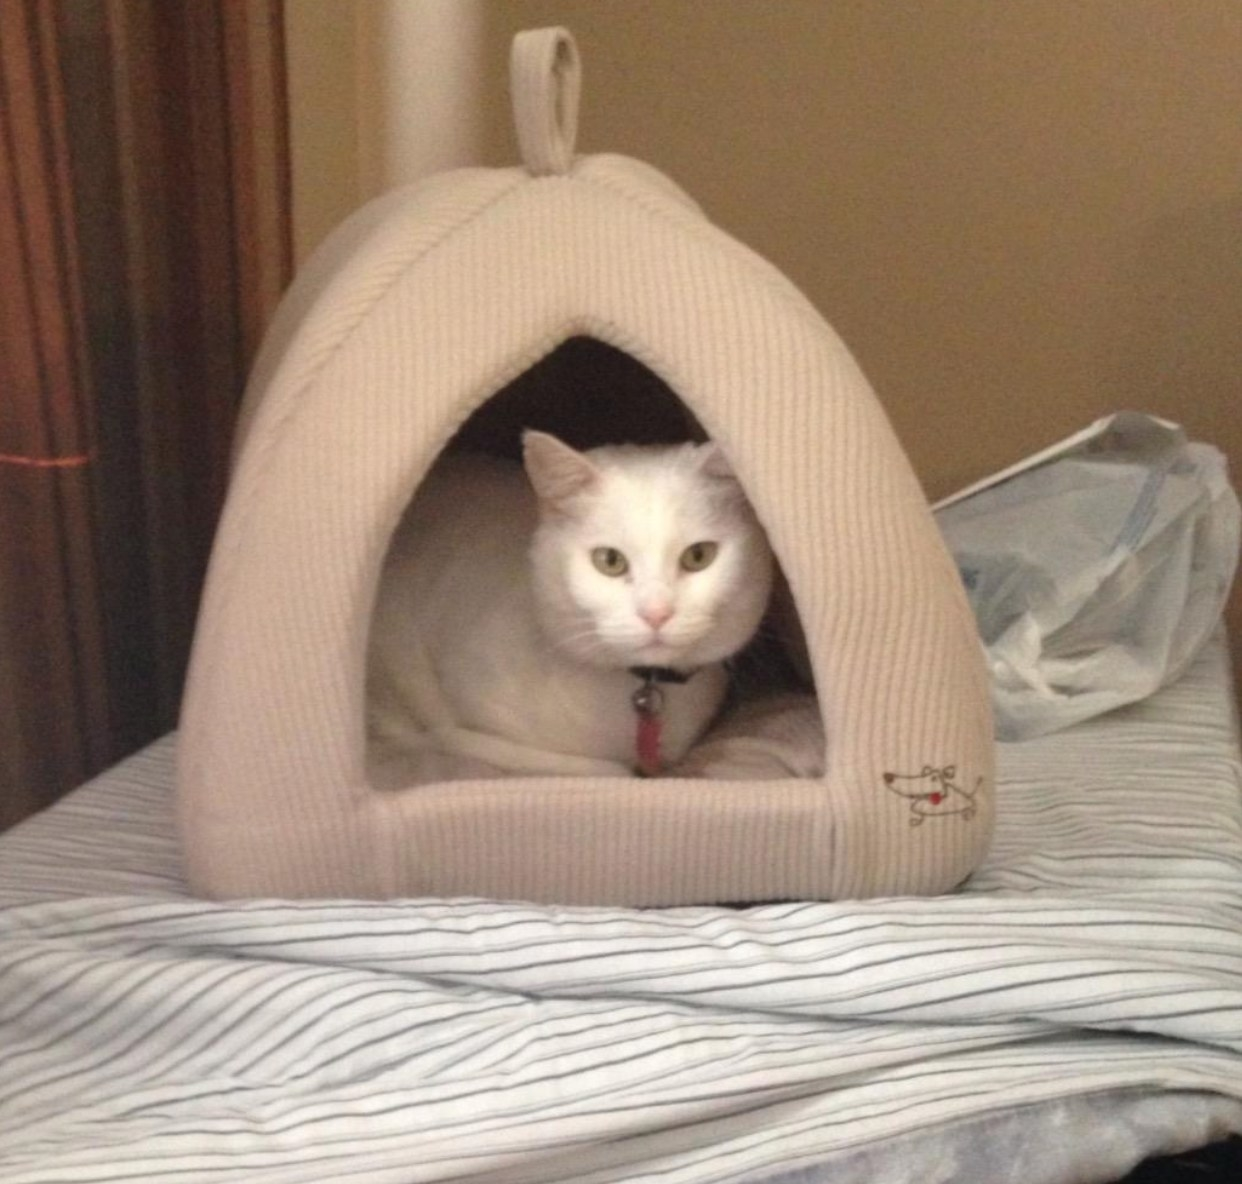 The tent pet bed